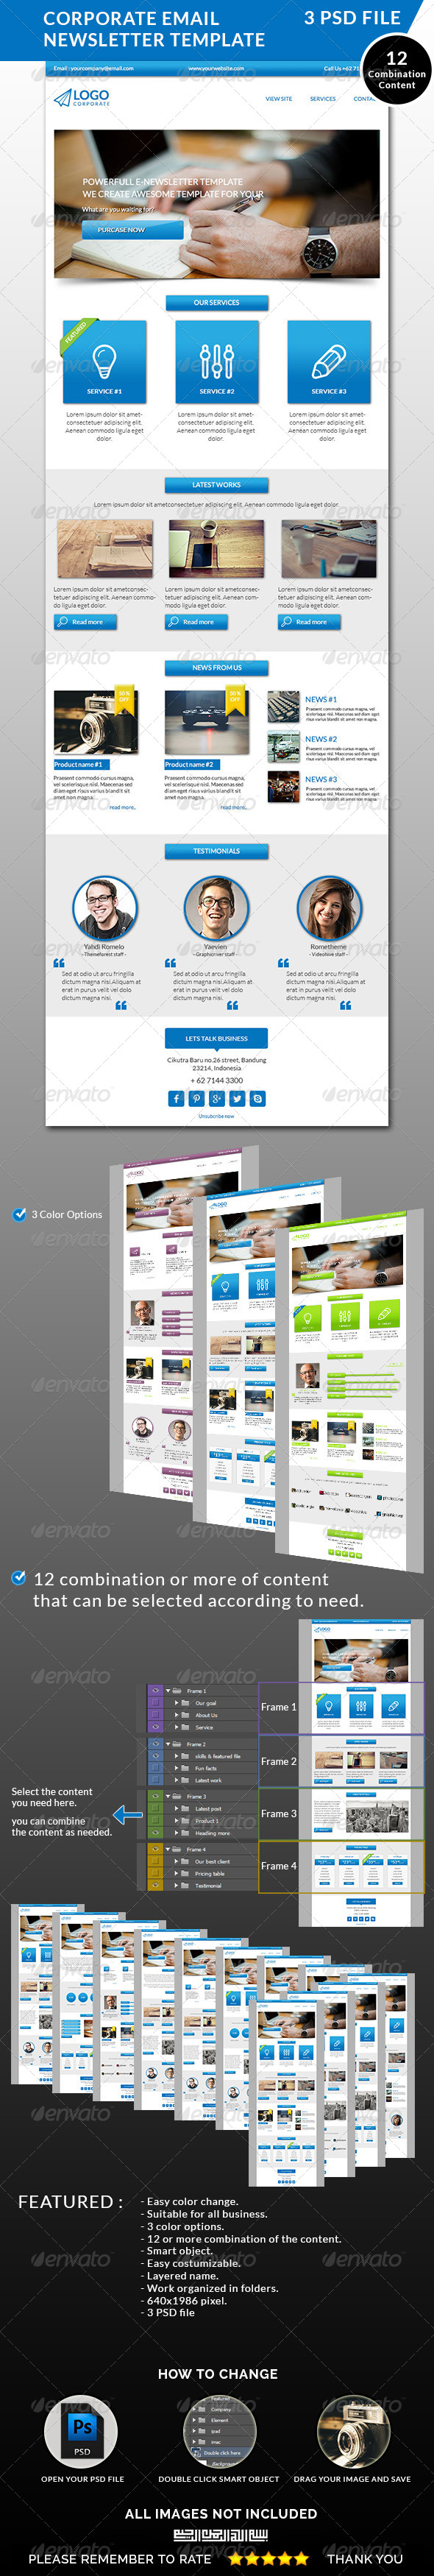 Email Template Corporate Graphics, Designs & Templates